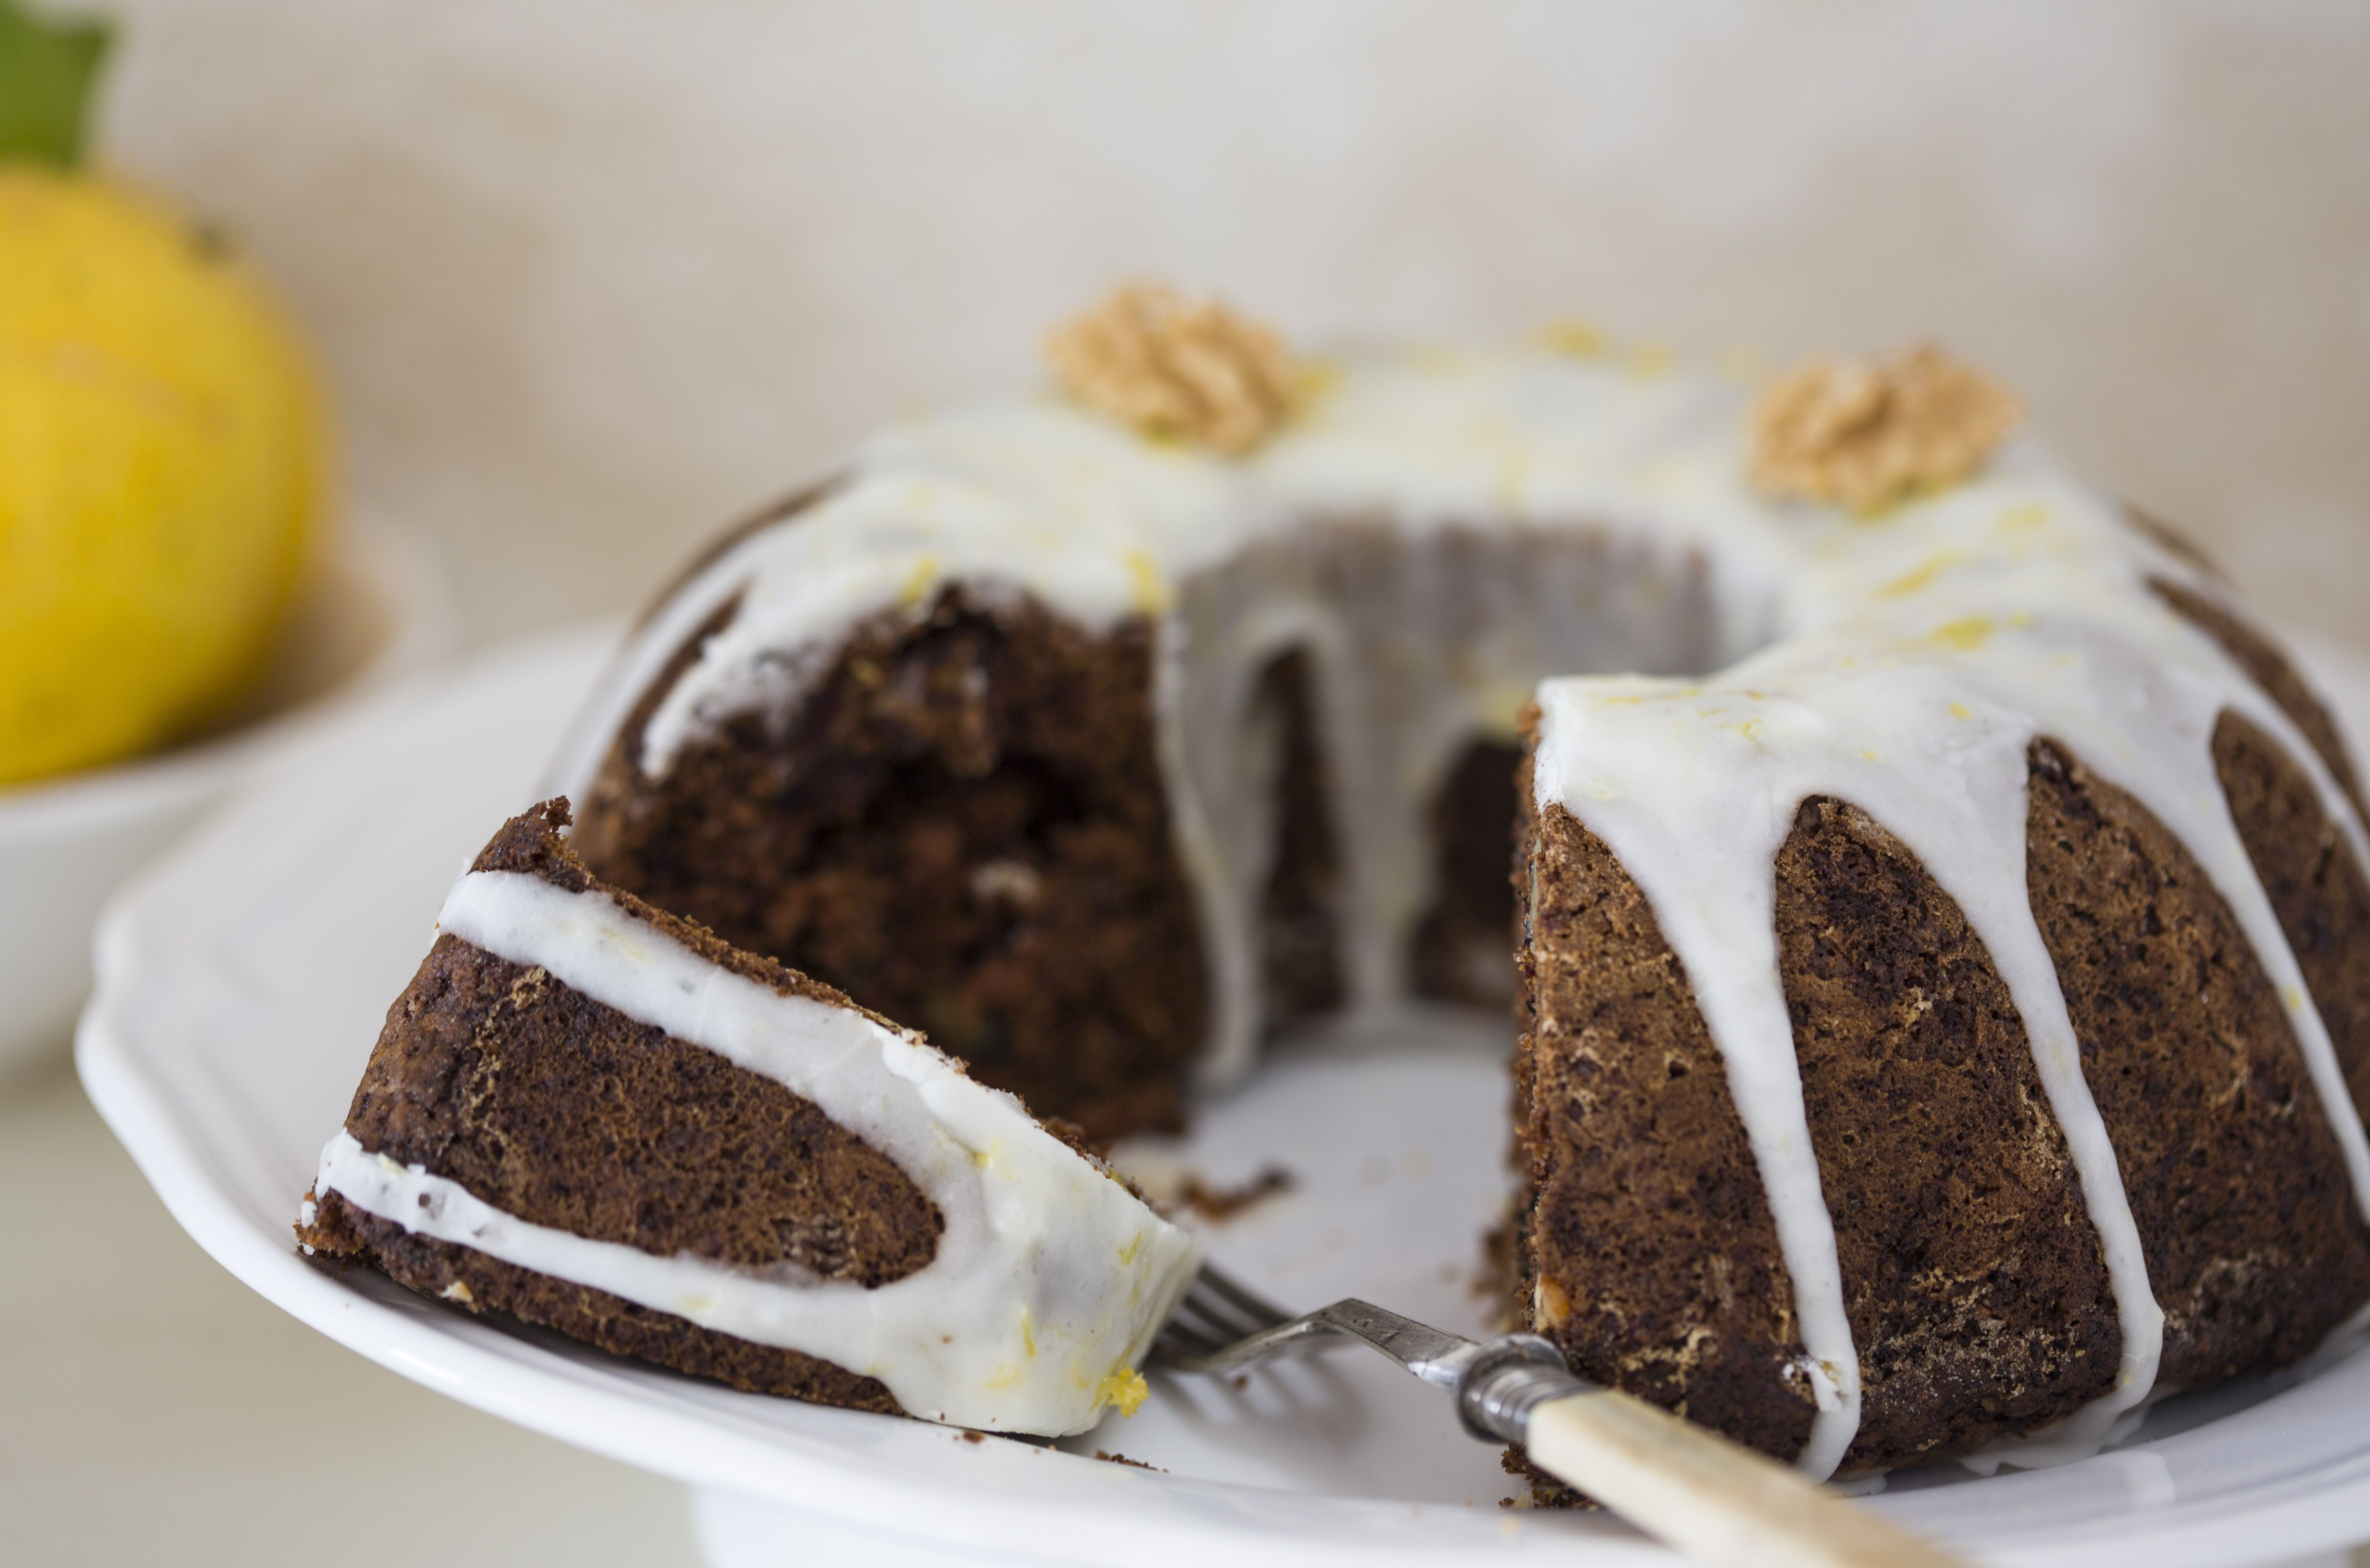 Date And Walnut Cake With Icing